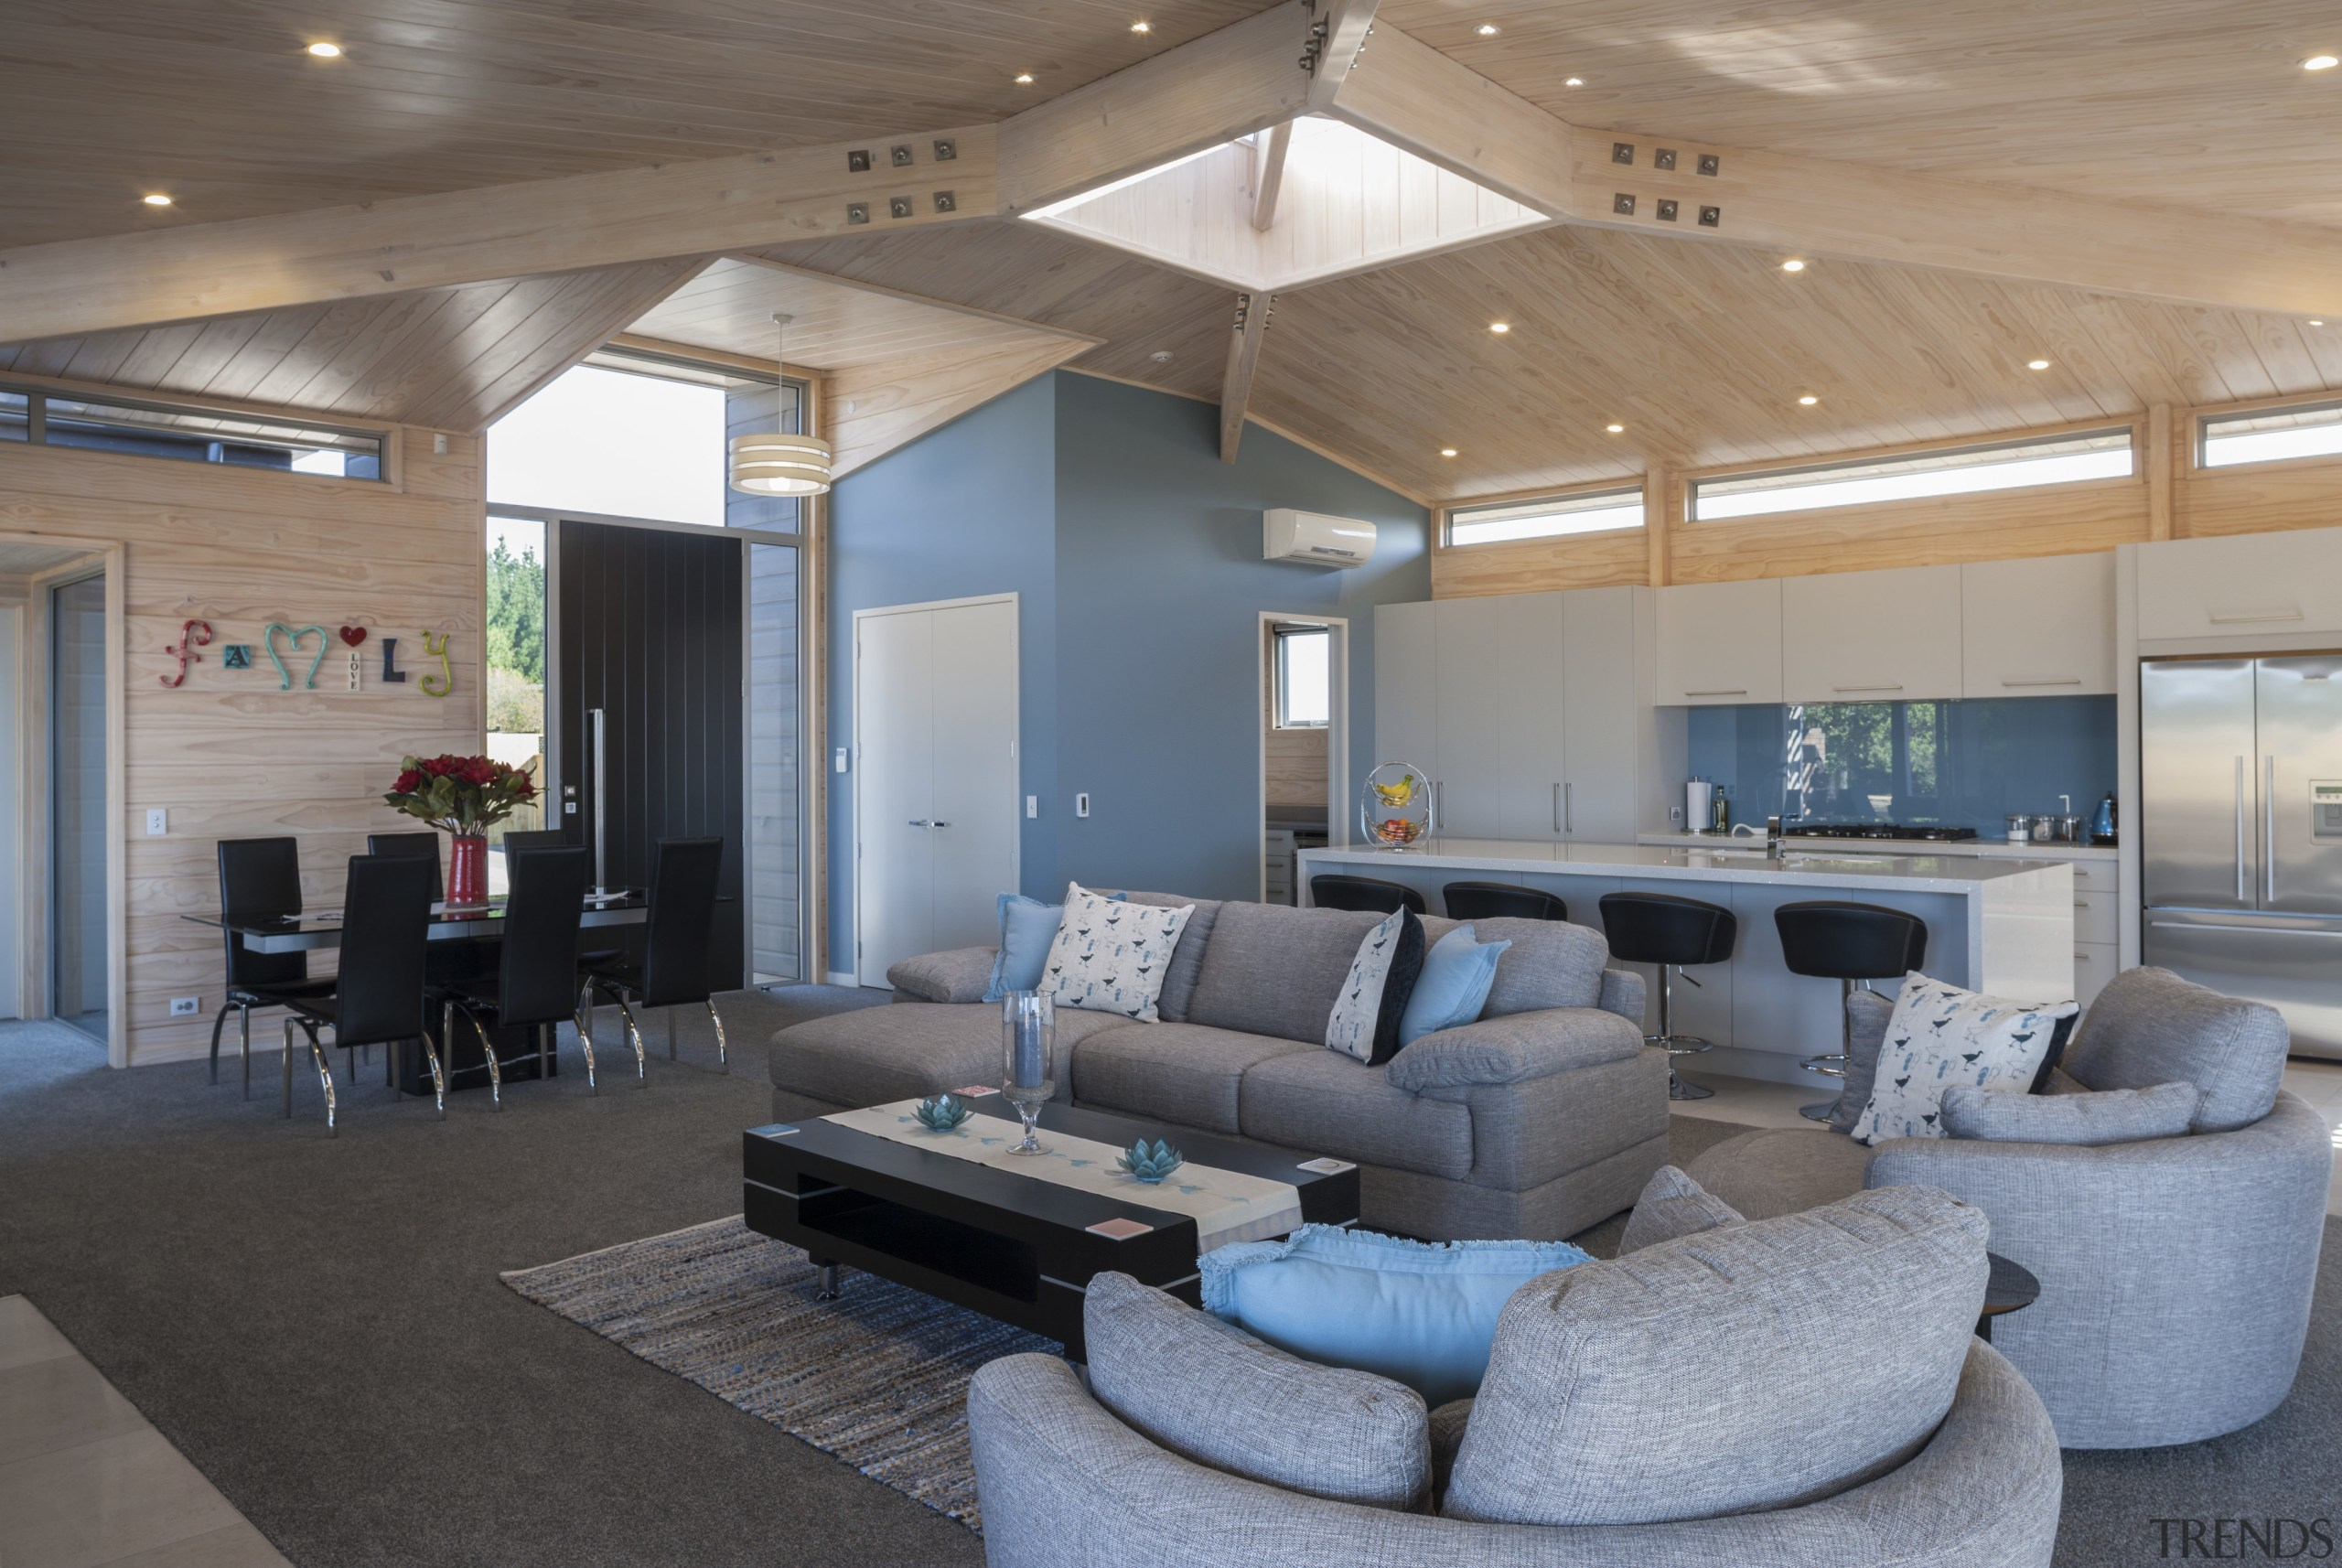 Lockwood Home built by Peter Richards - Lockwood architecture, ceiling, house, interior design, living room, lobby, real estate, gray